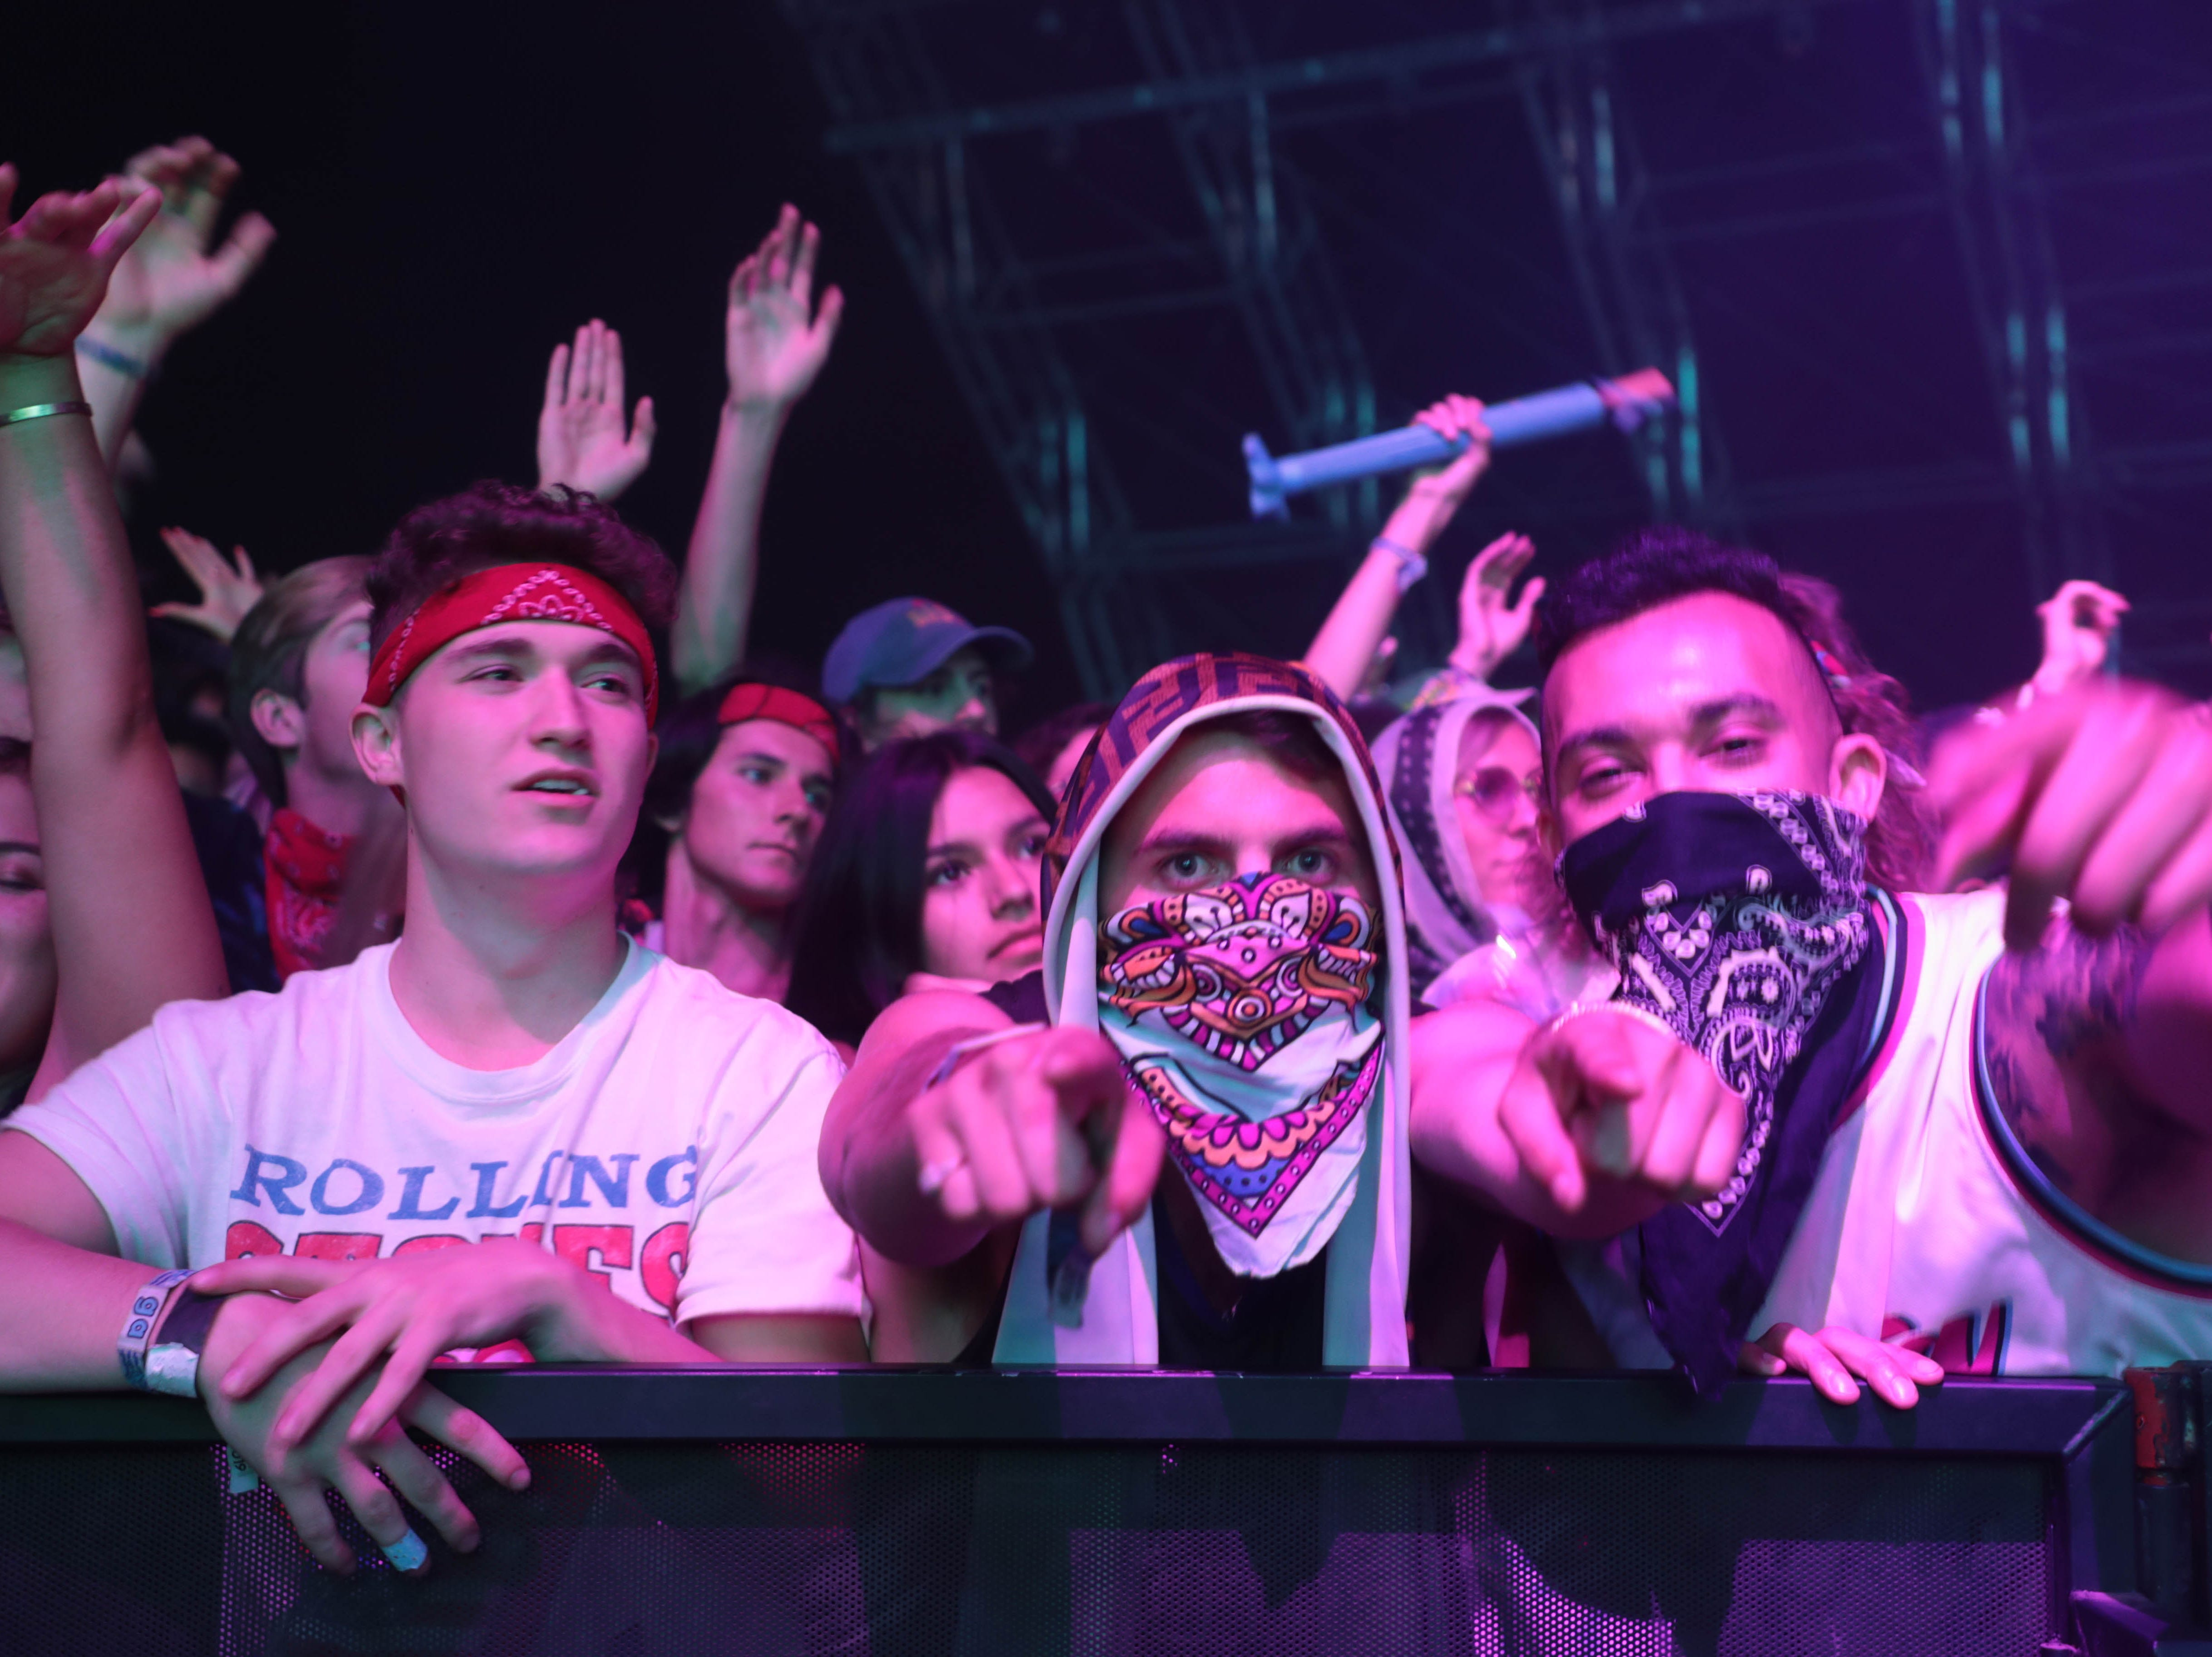 Dillon Francis performs at Coachella Valley Music and Arts Festival on Sunday, April 14, 2019 in Indio, Calif.